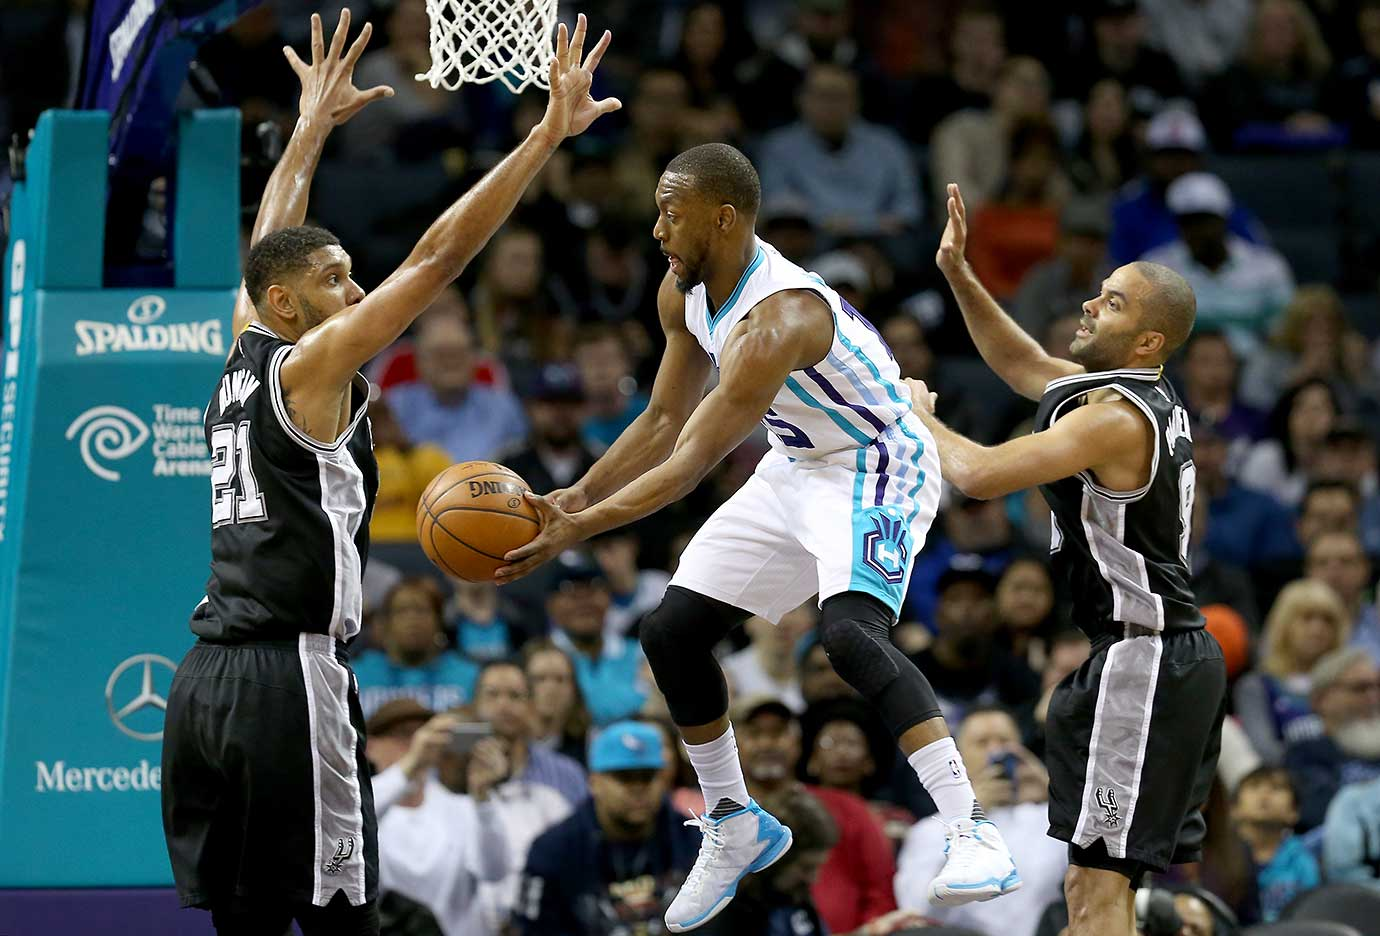 Kemba Walker of Charlotte looks to pass around Tim Duncan and Tony Parker of the San Antonio Spurs.